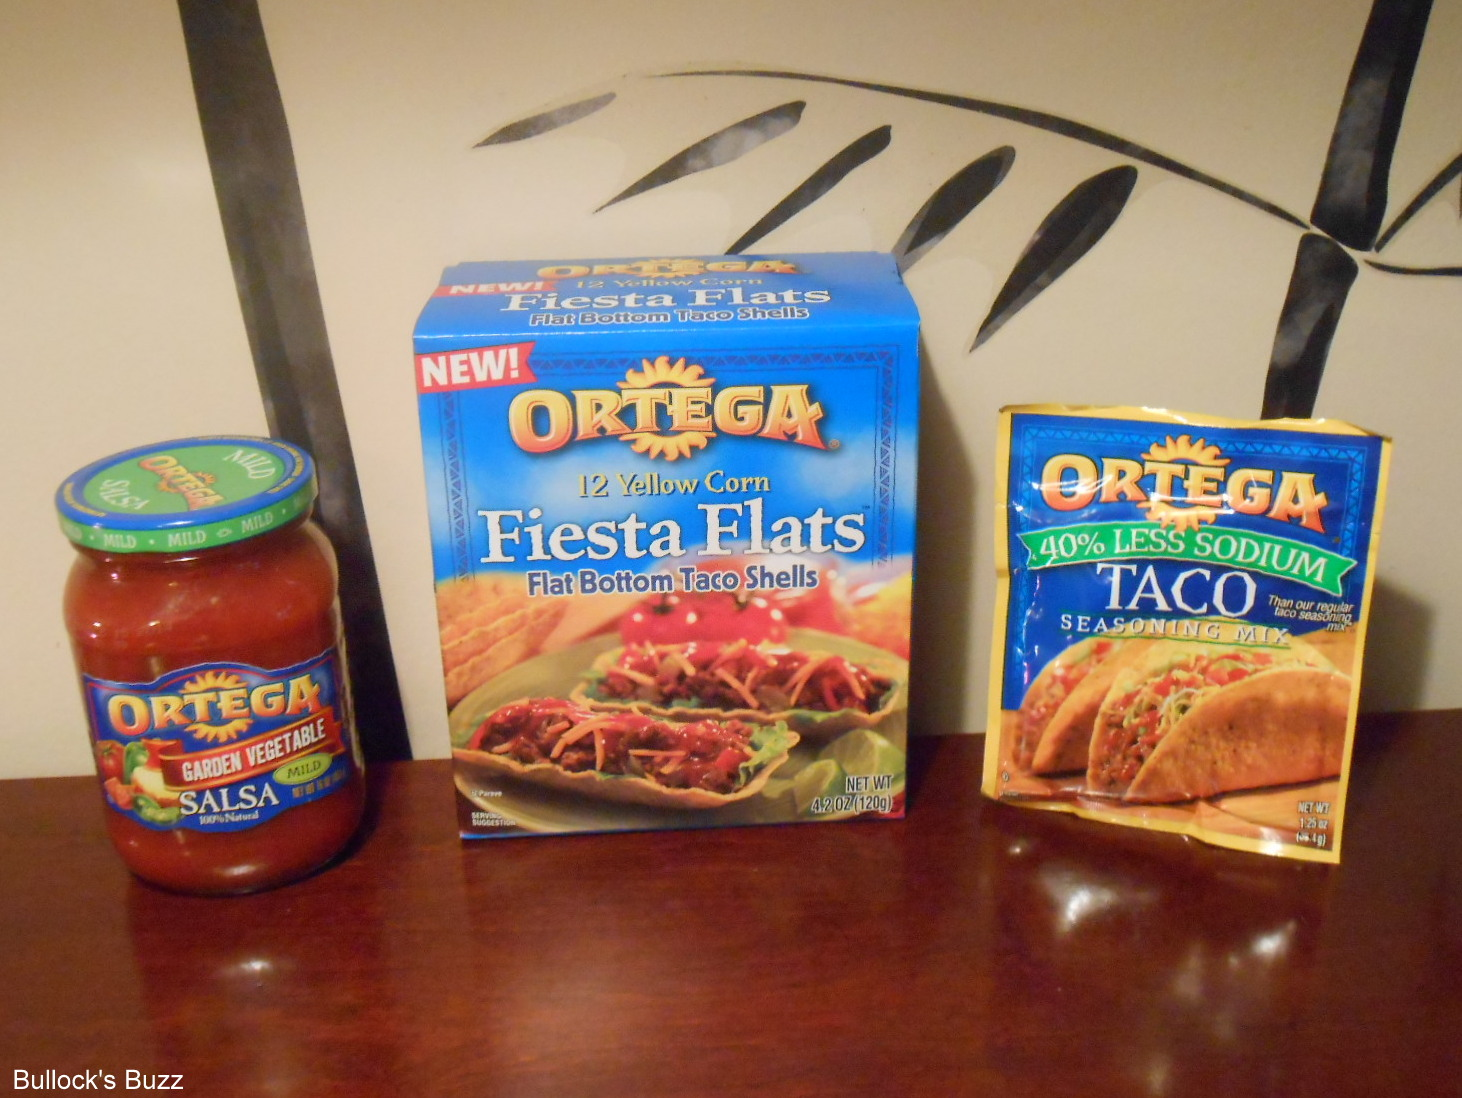 Fundido Fiesta Flats Recipe by Ortega for National Taco Day